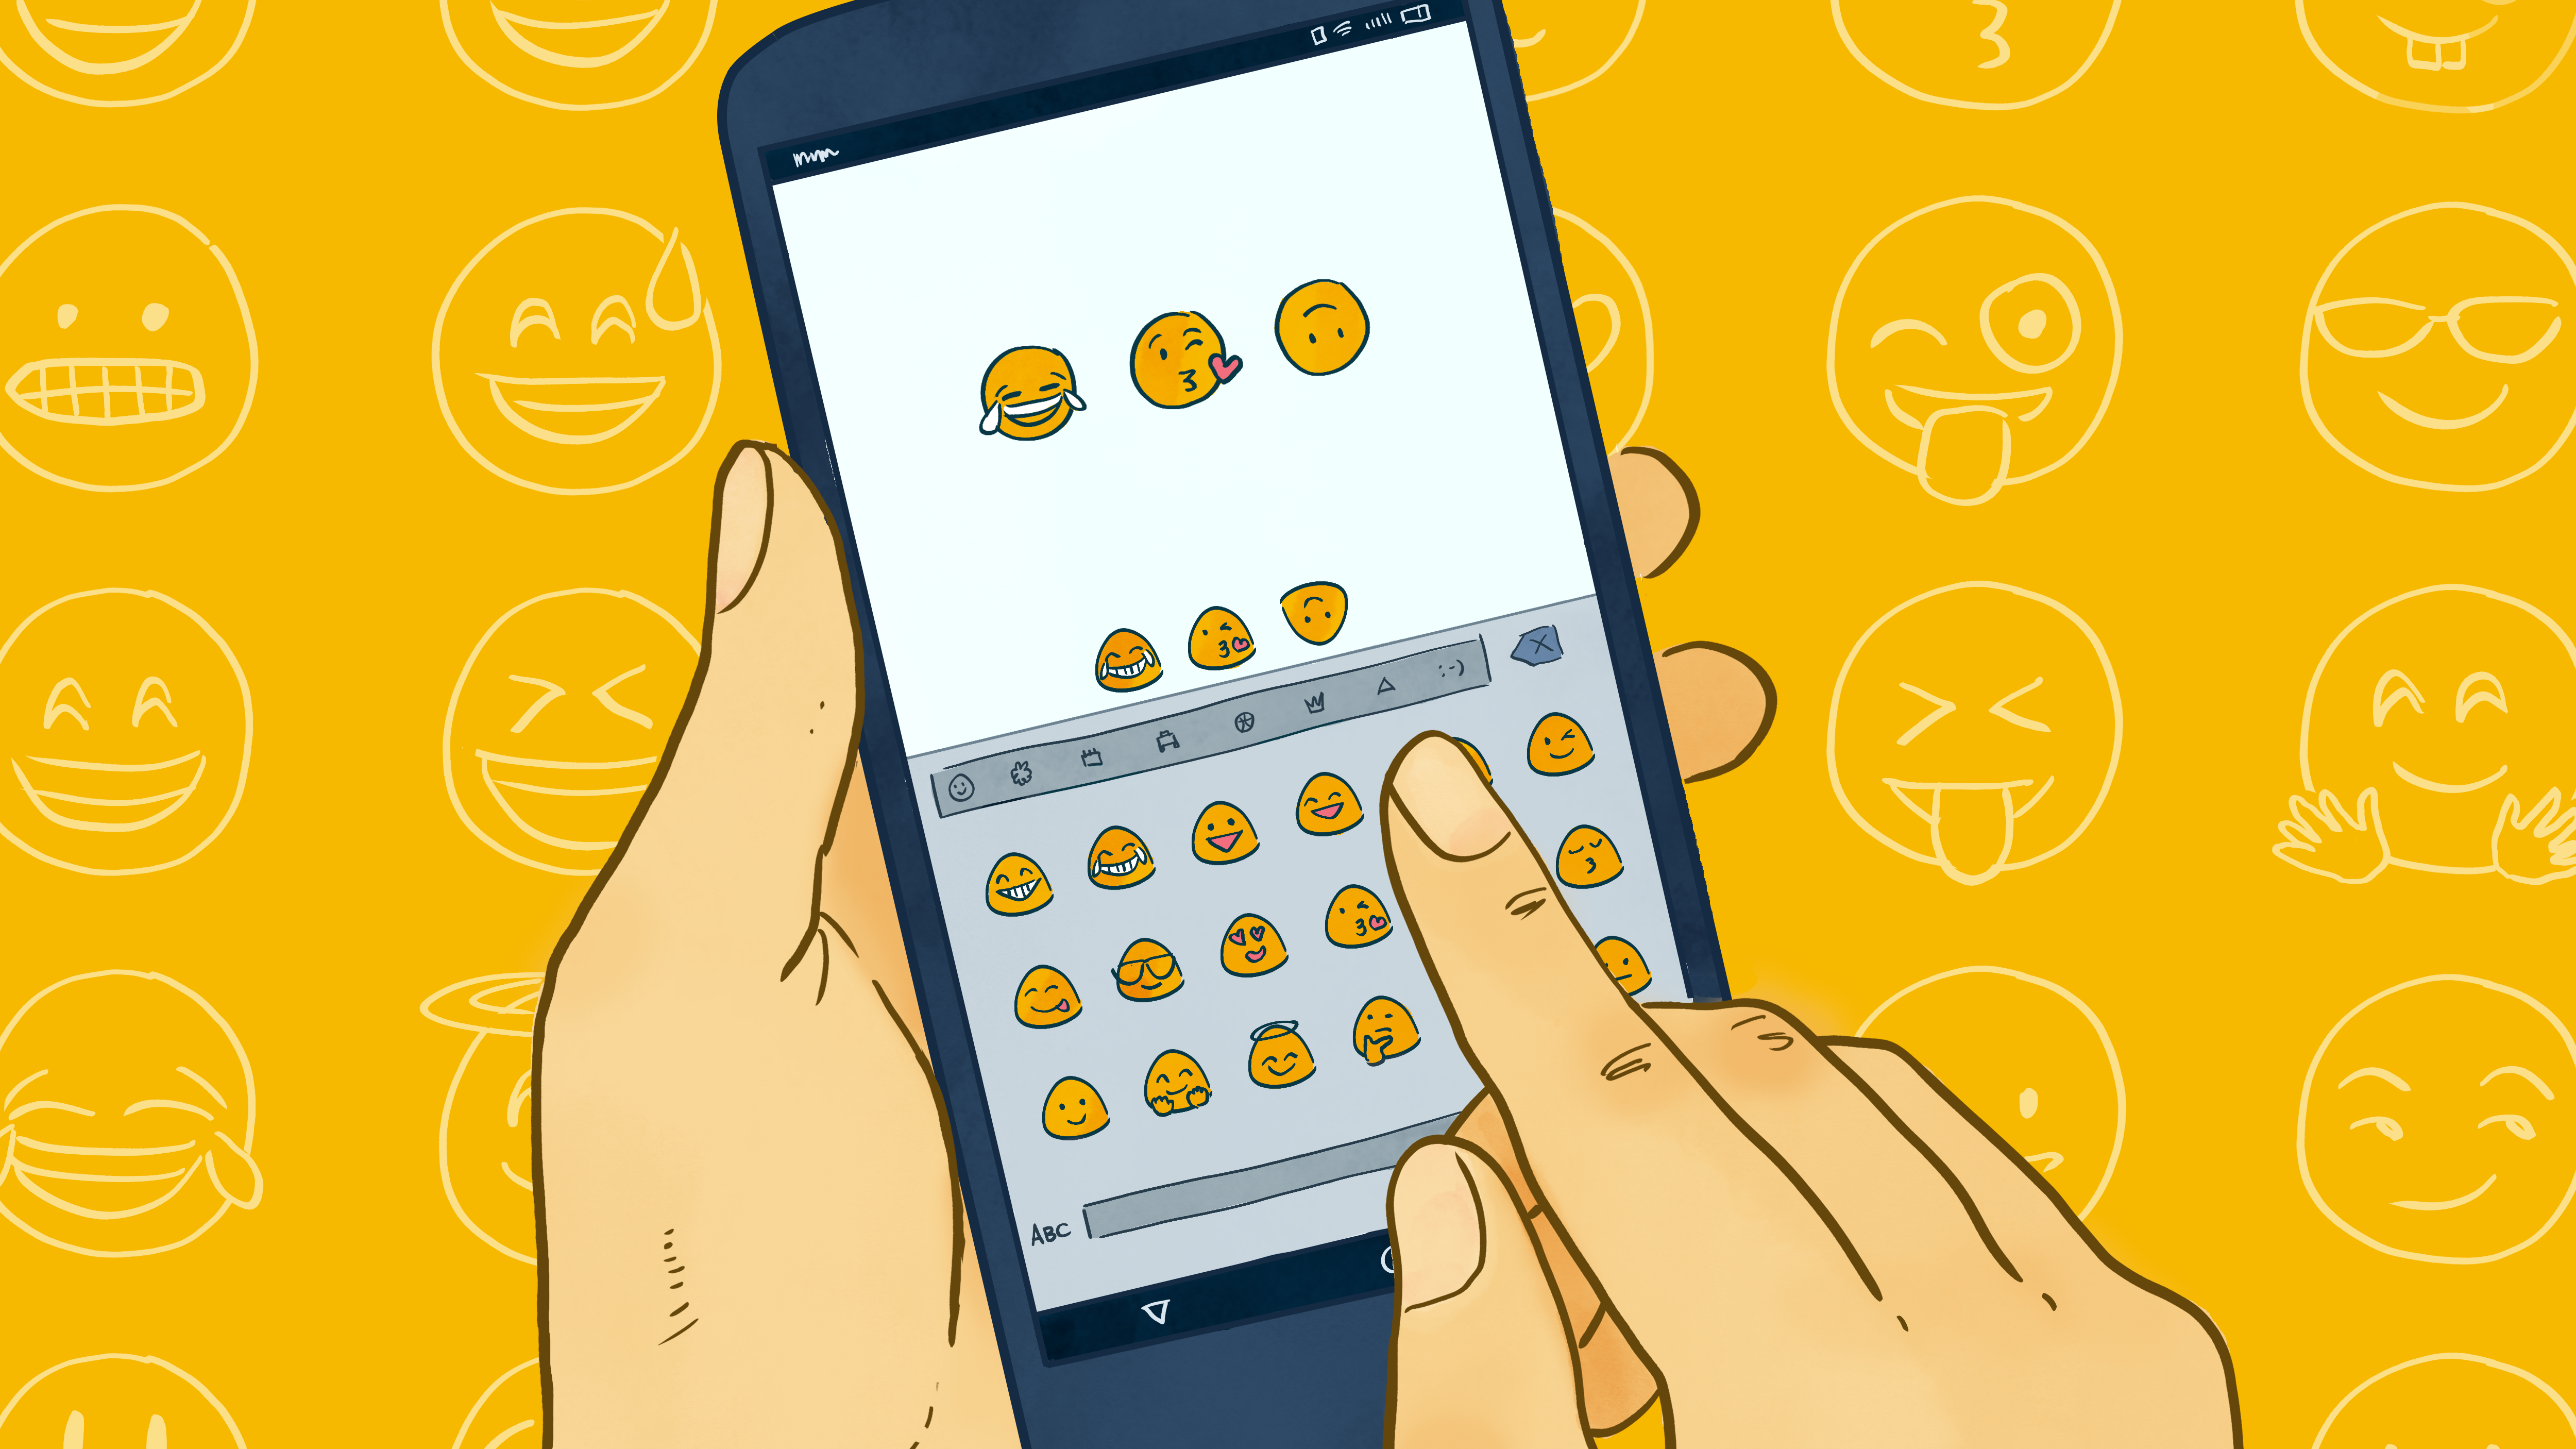 How To Get Iphone Emojis For Your Android